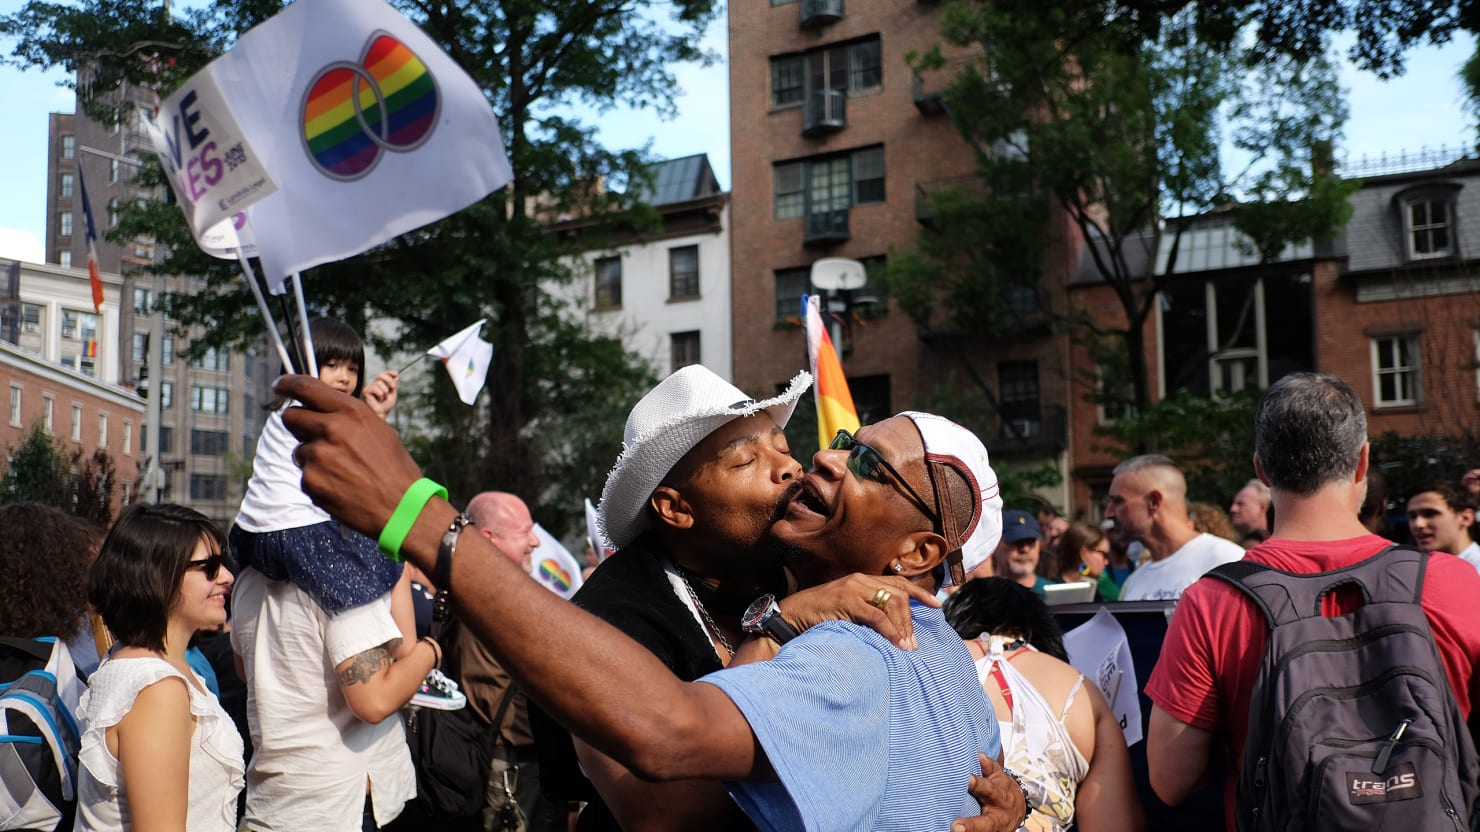 At Stonewall, The Meaning of Pride